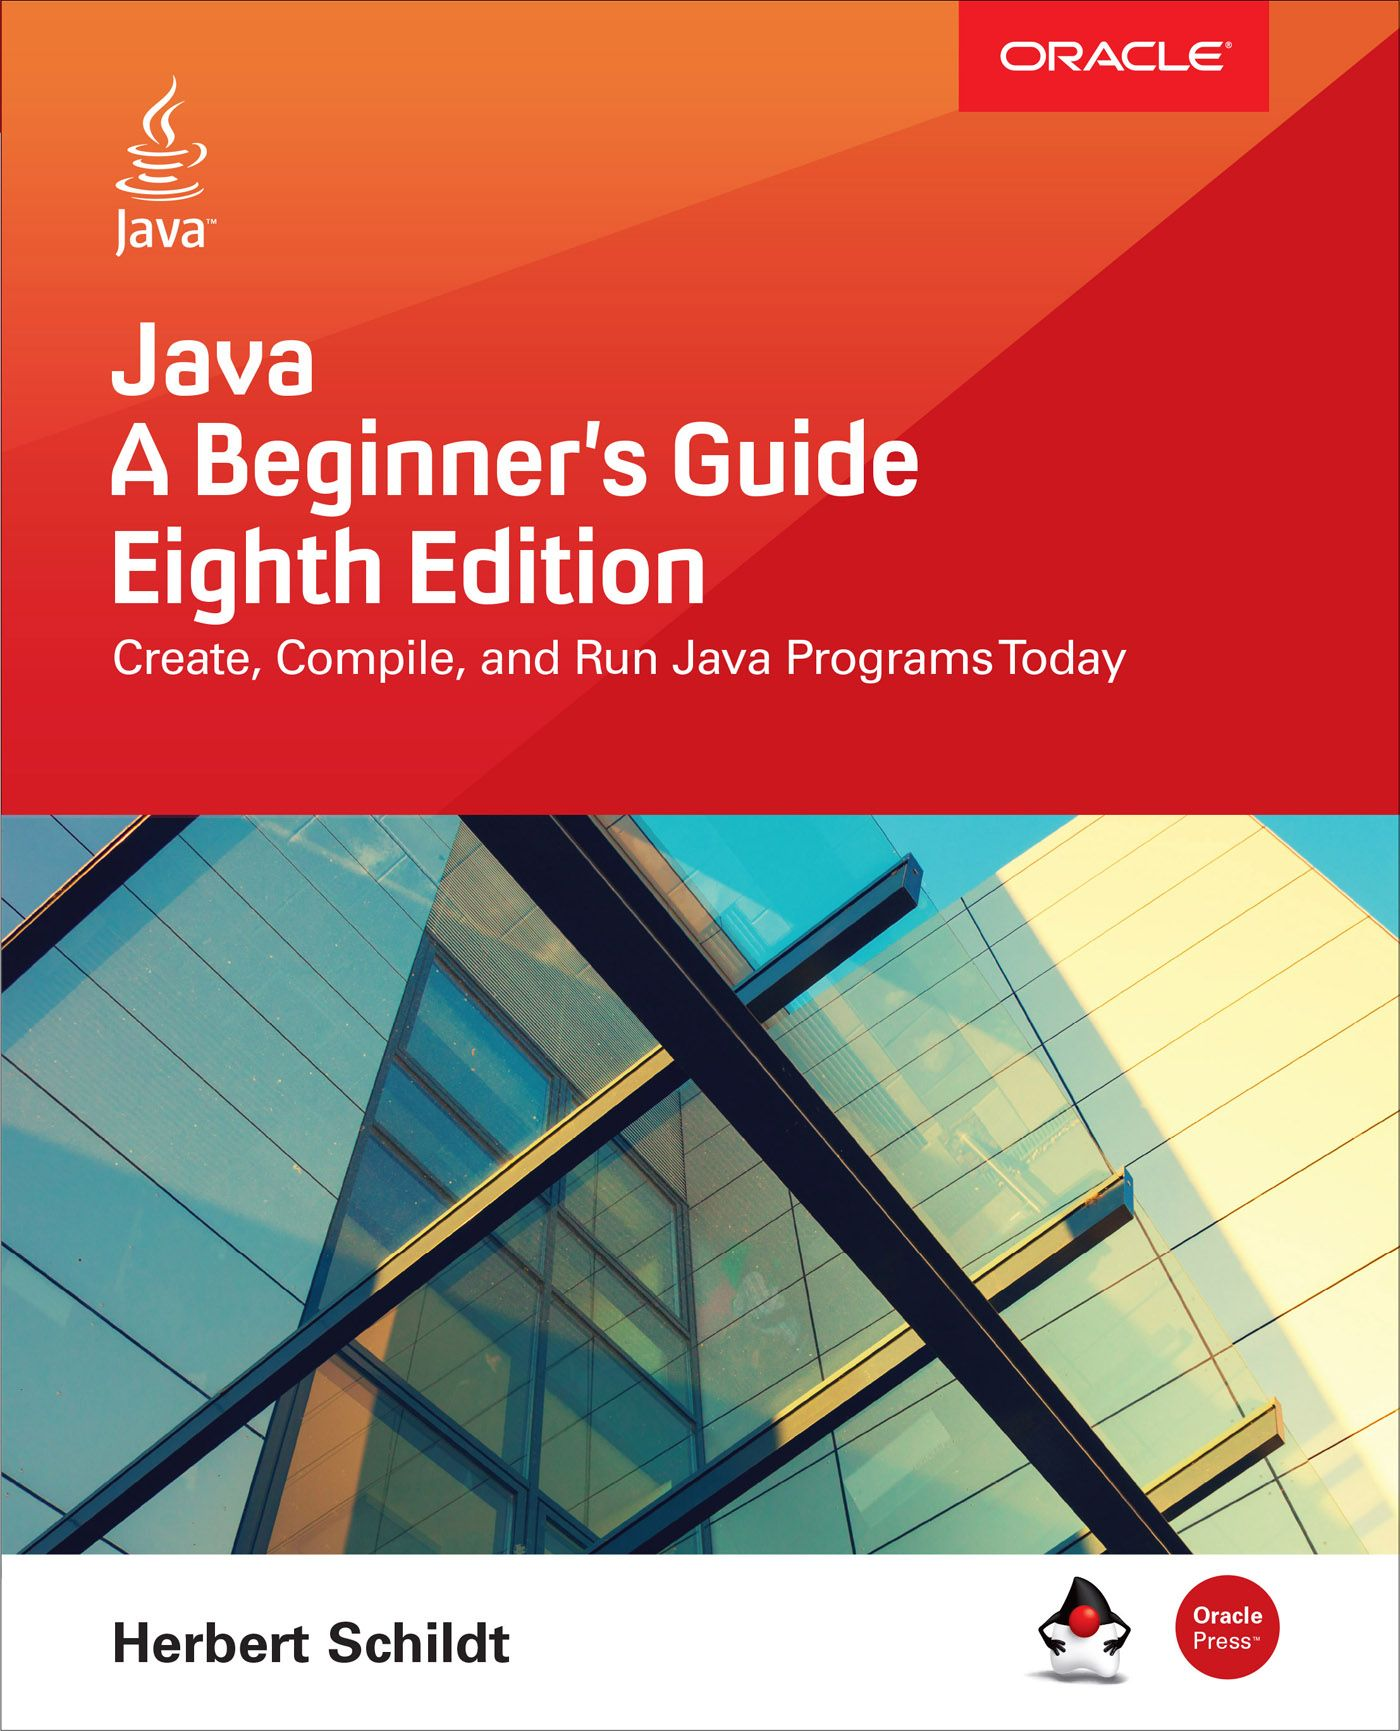 Java: A Beginner's Guide 8th Edition Pdf Free Download